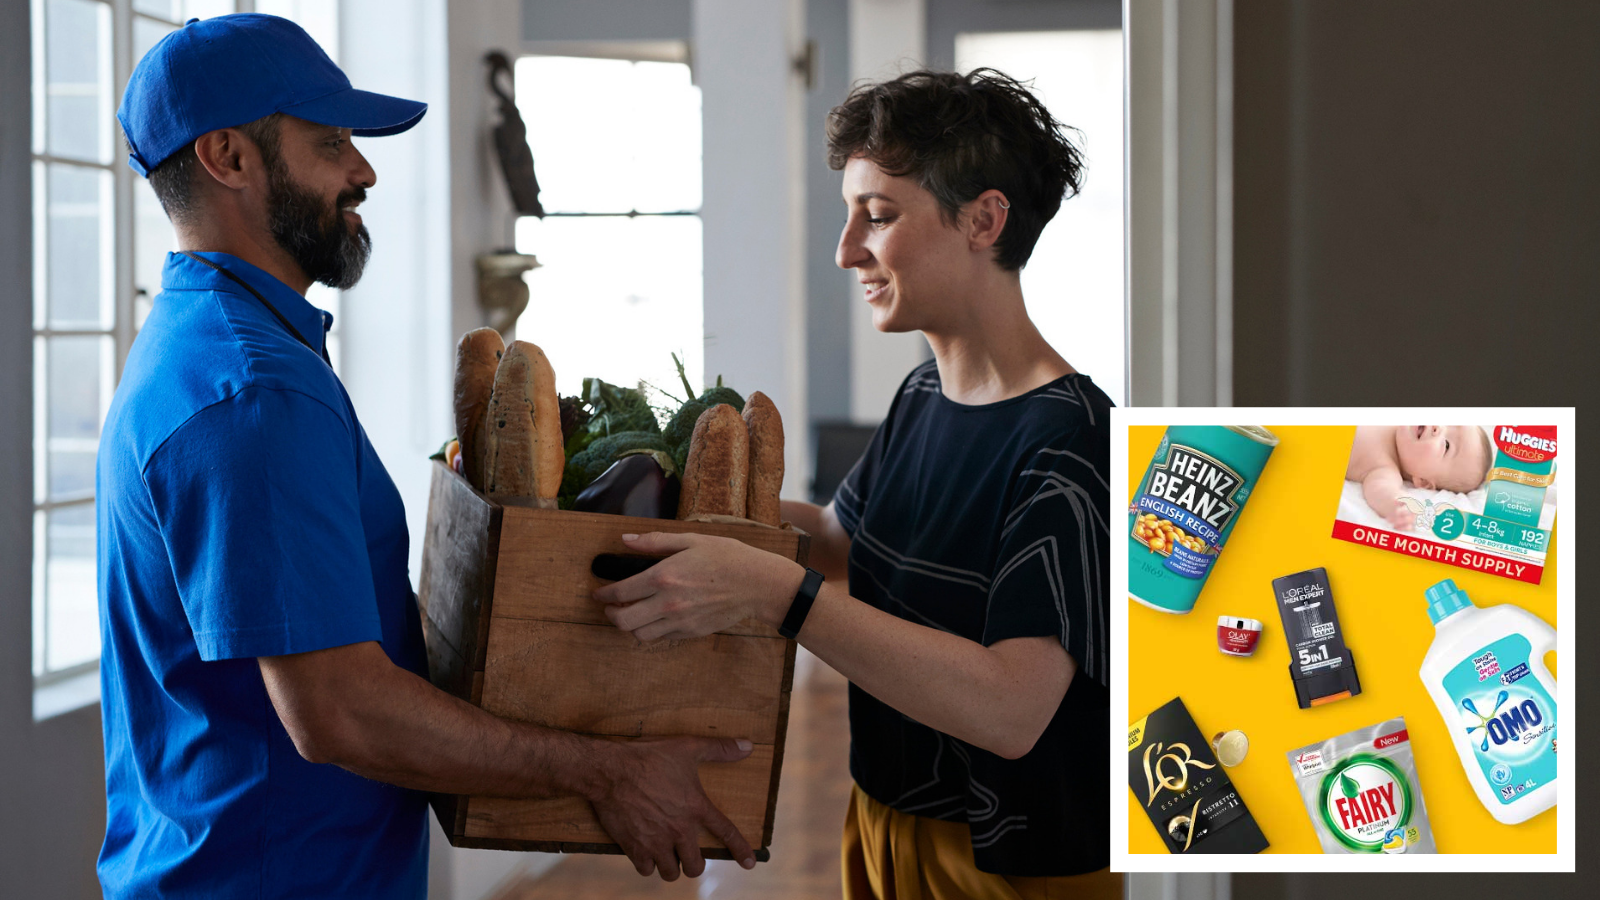 Here's how to get Amazon to deliver your groceries for free and knock 10% off